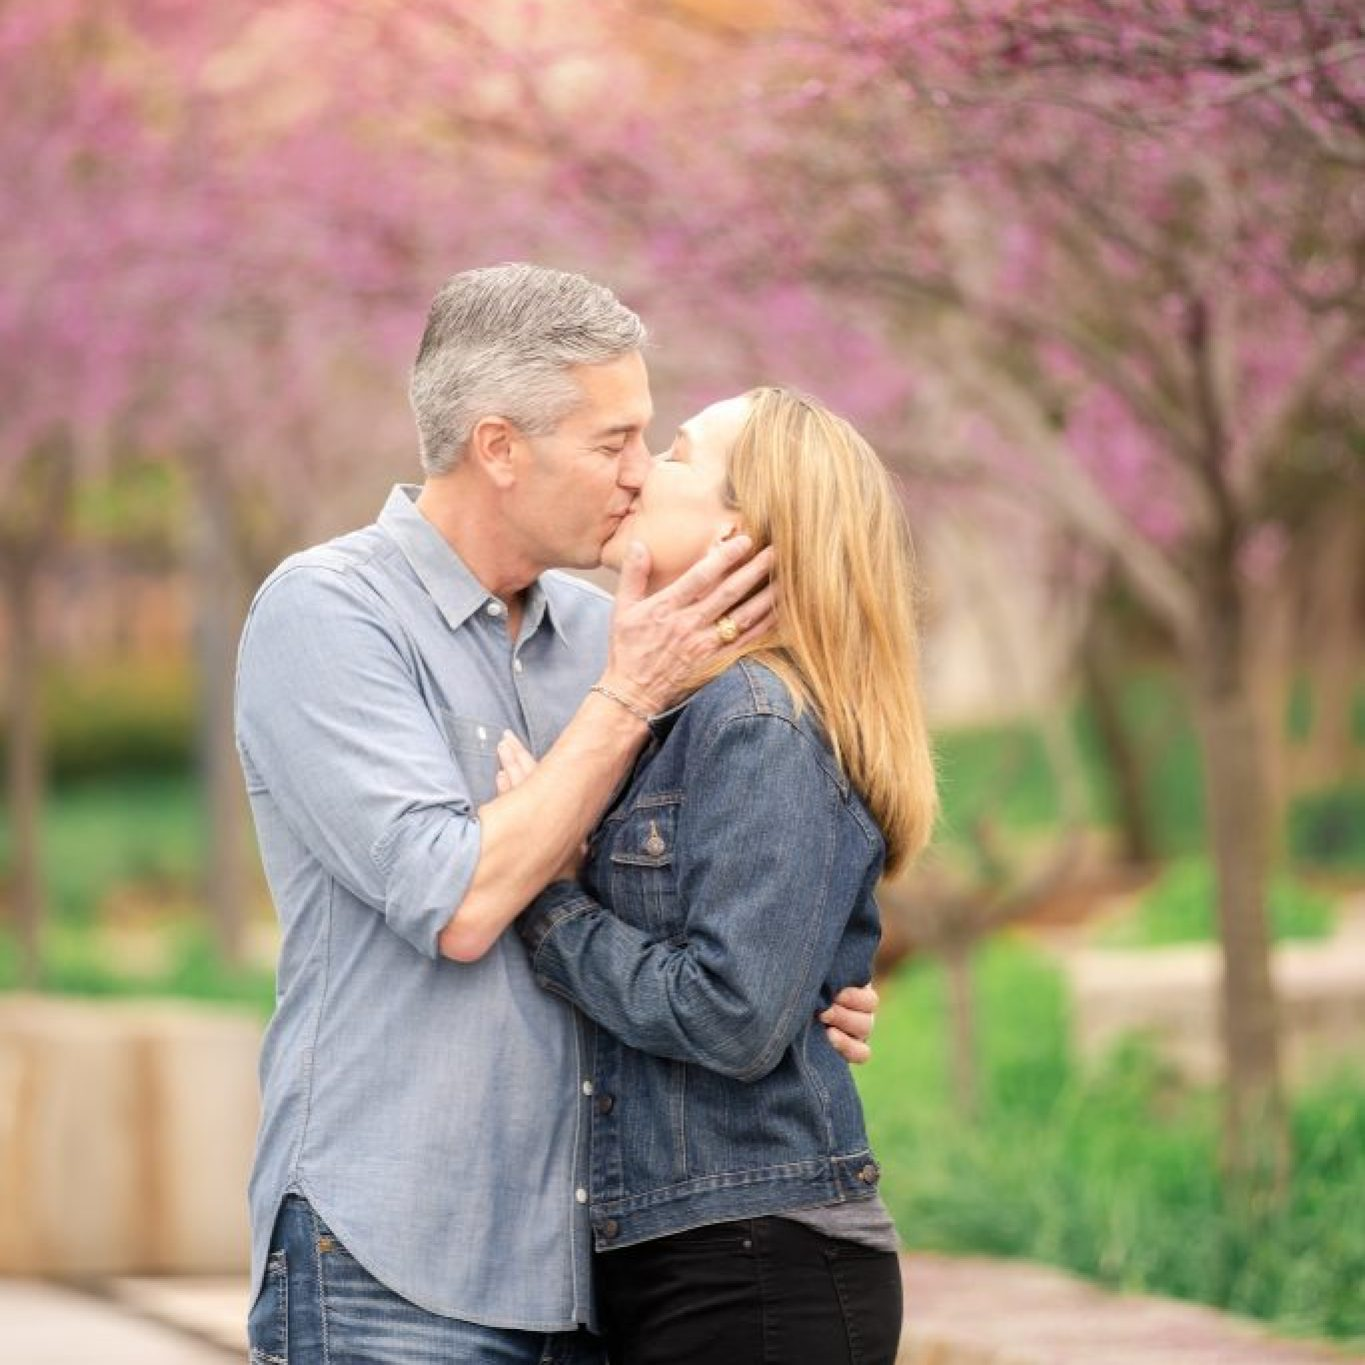 Las Colinas Canals Engagement Photographer, wedding photographer, denton wedding photographer, dfw engagement photographer, denton photographer, old town lewisville photographer, Flower Mound Photographer, Flower Mound Wedding Photographer